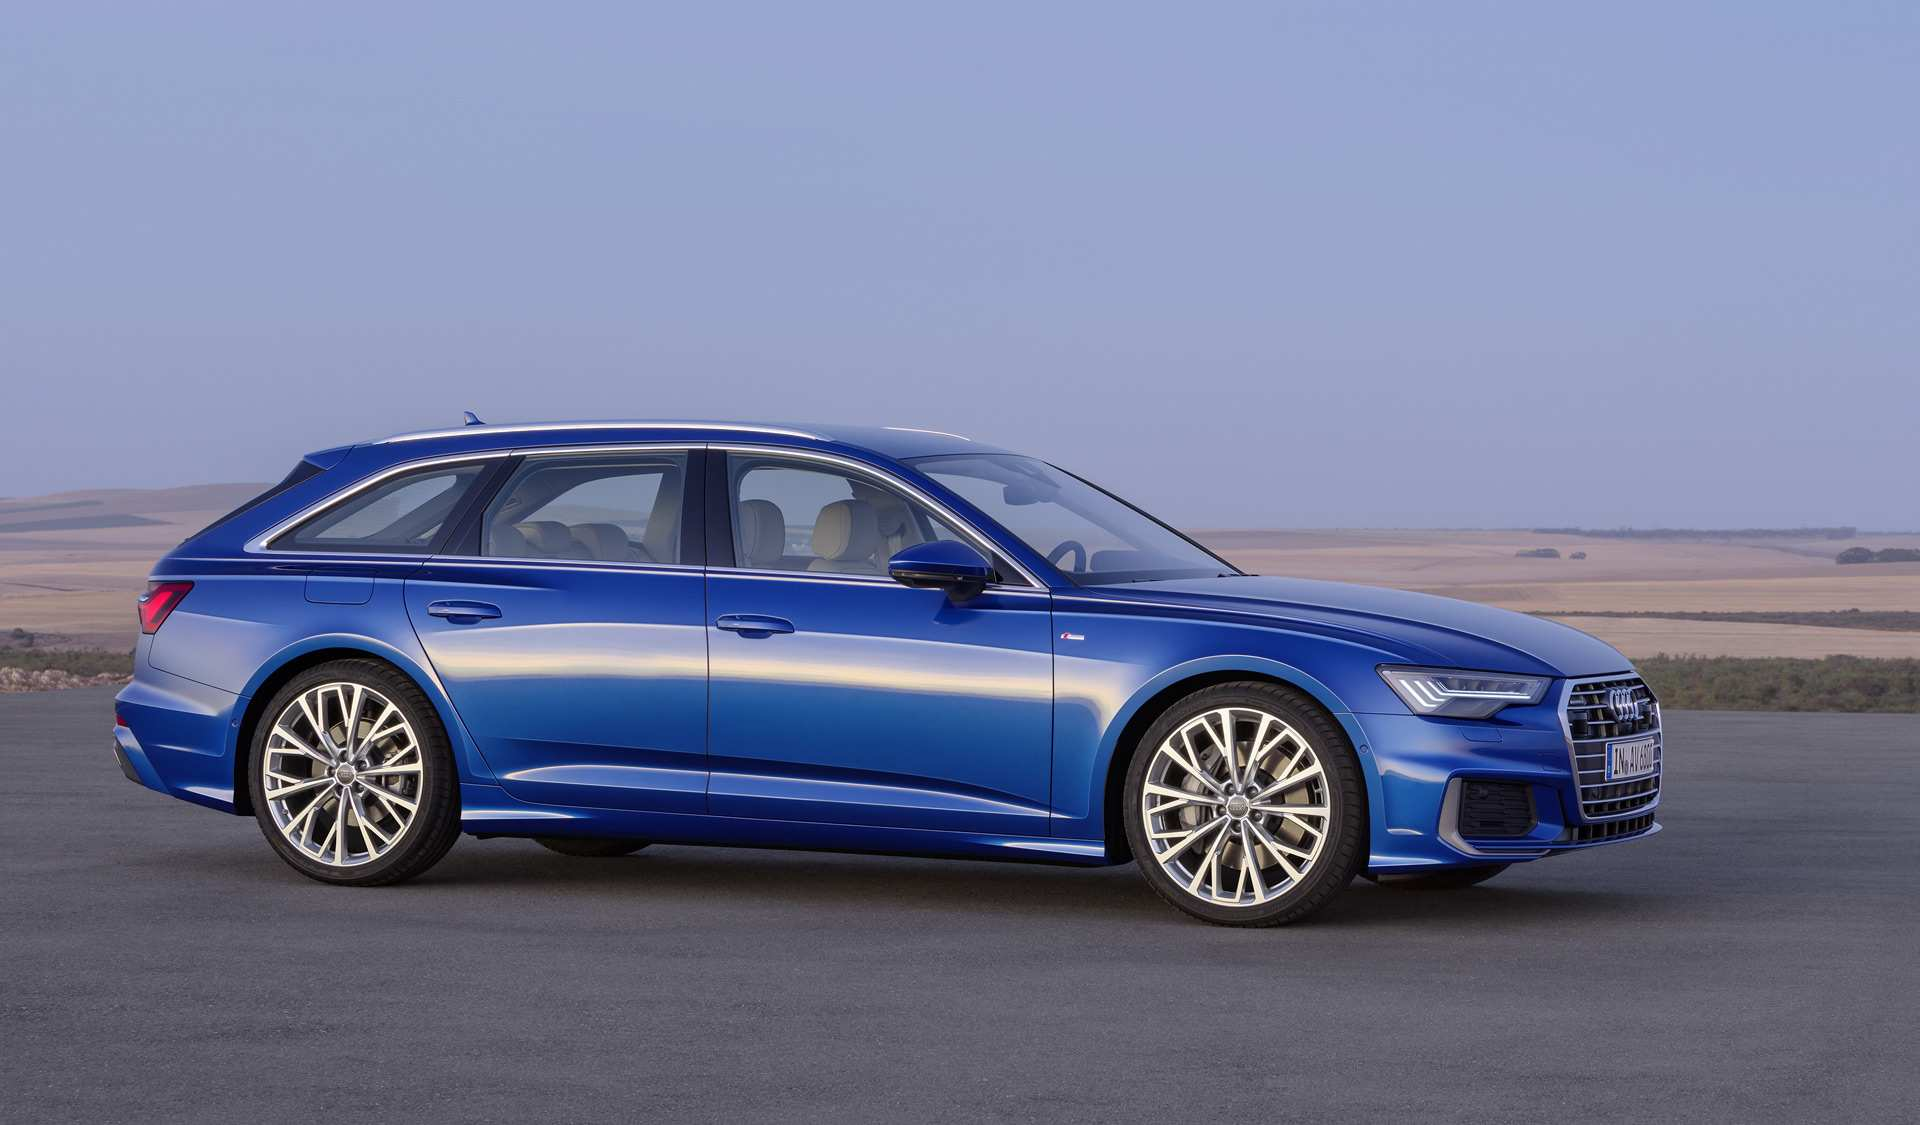 43 Concept of 2019 Audi A6 News History for 2019 Audi A6 News